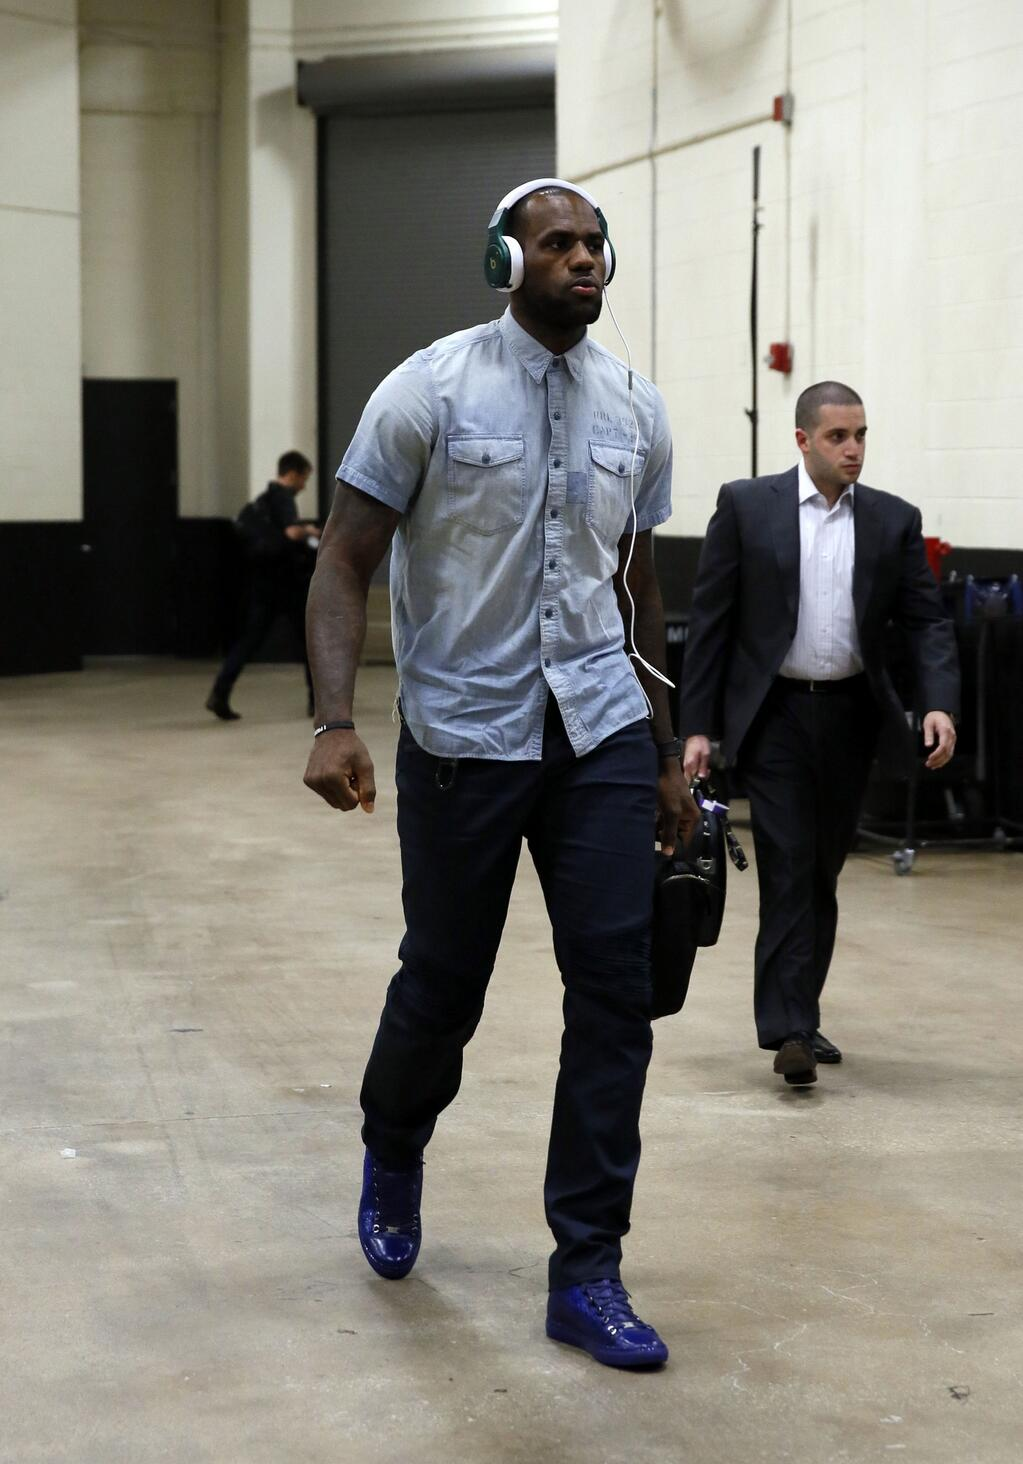 lebron-james-2013-nba-finals-game-3-blue-sneakers-fashion